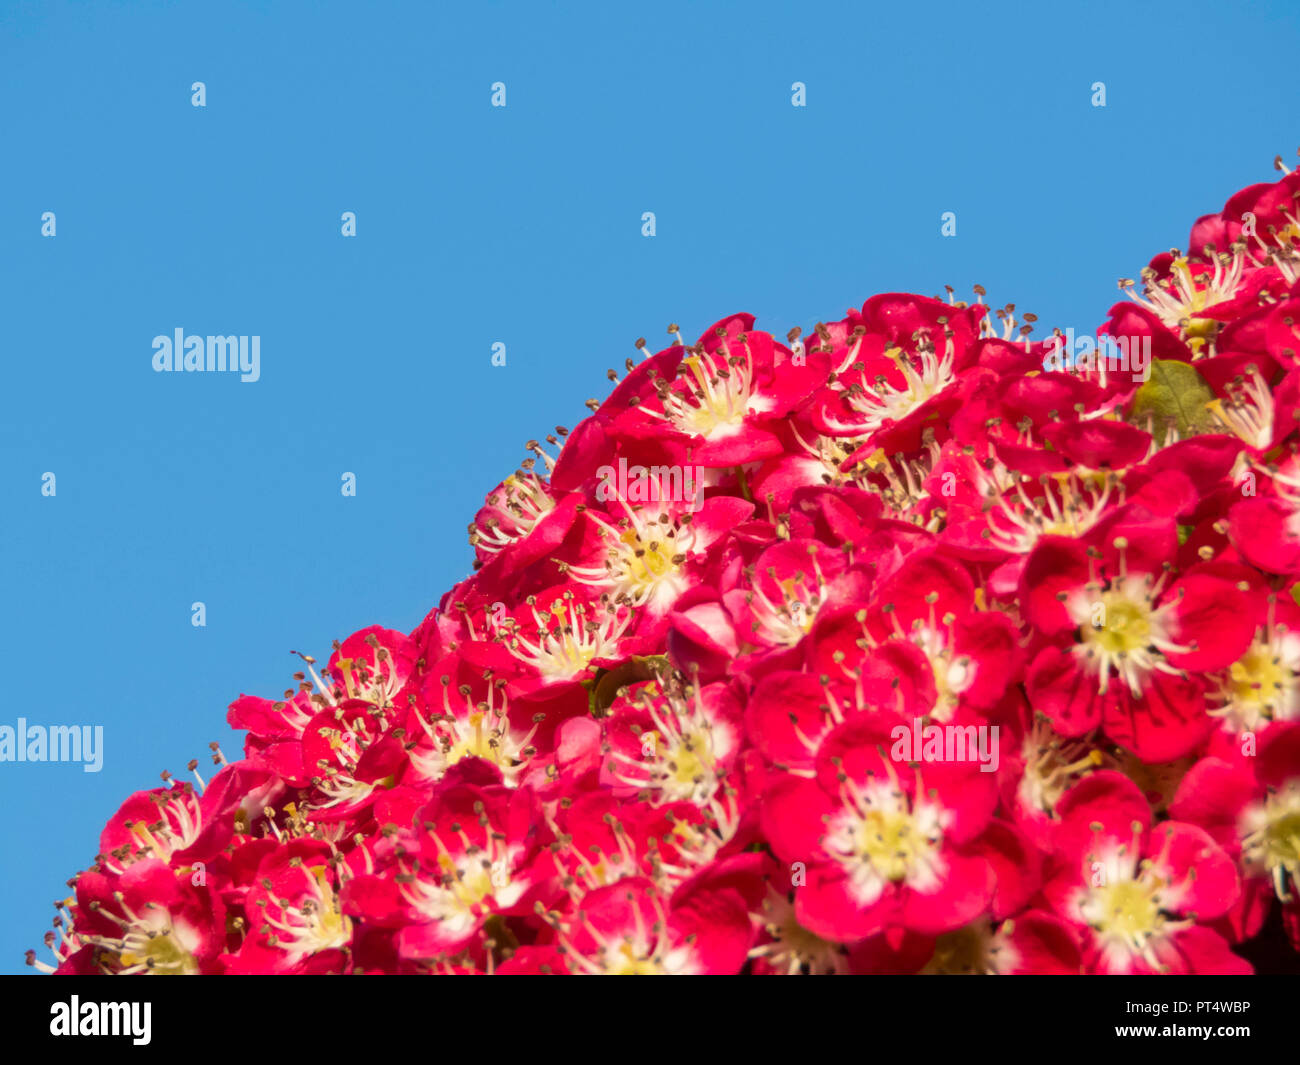 close up of hawthorn tree flowering in spring (cratageus laevigata) 'crimson cloud' variety in a garden in Cardiff, Wales, UK - Stock Image